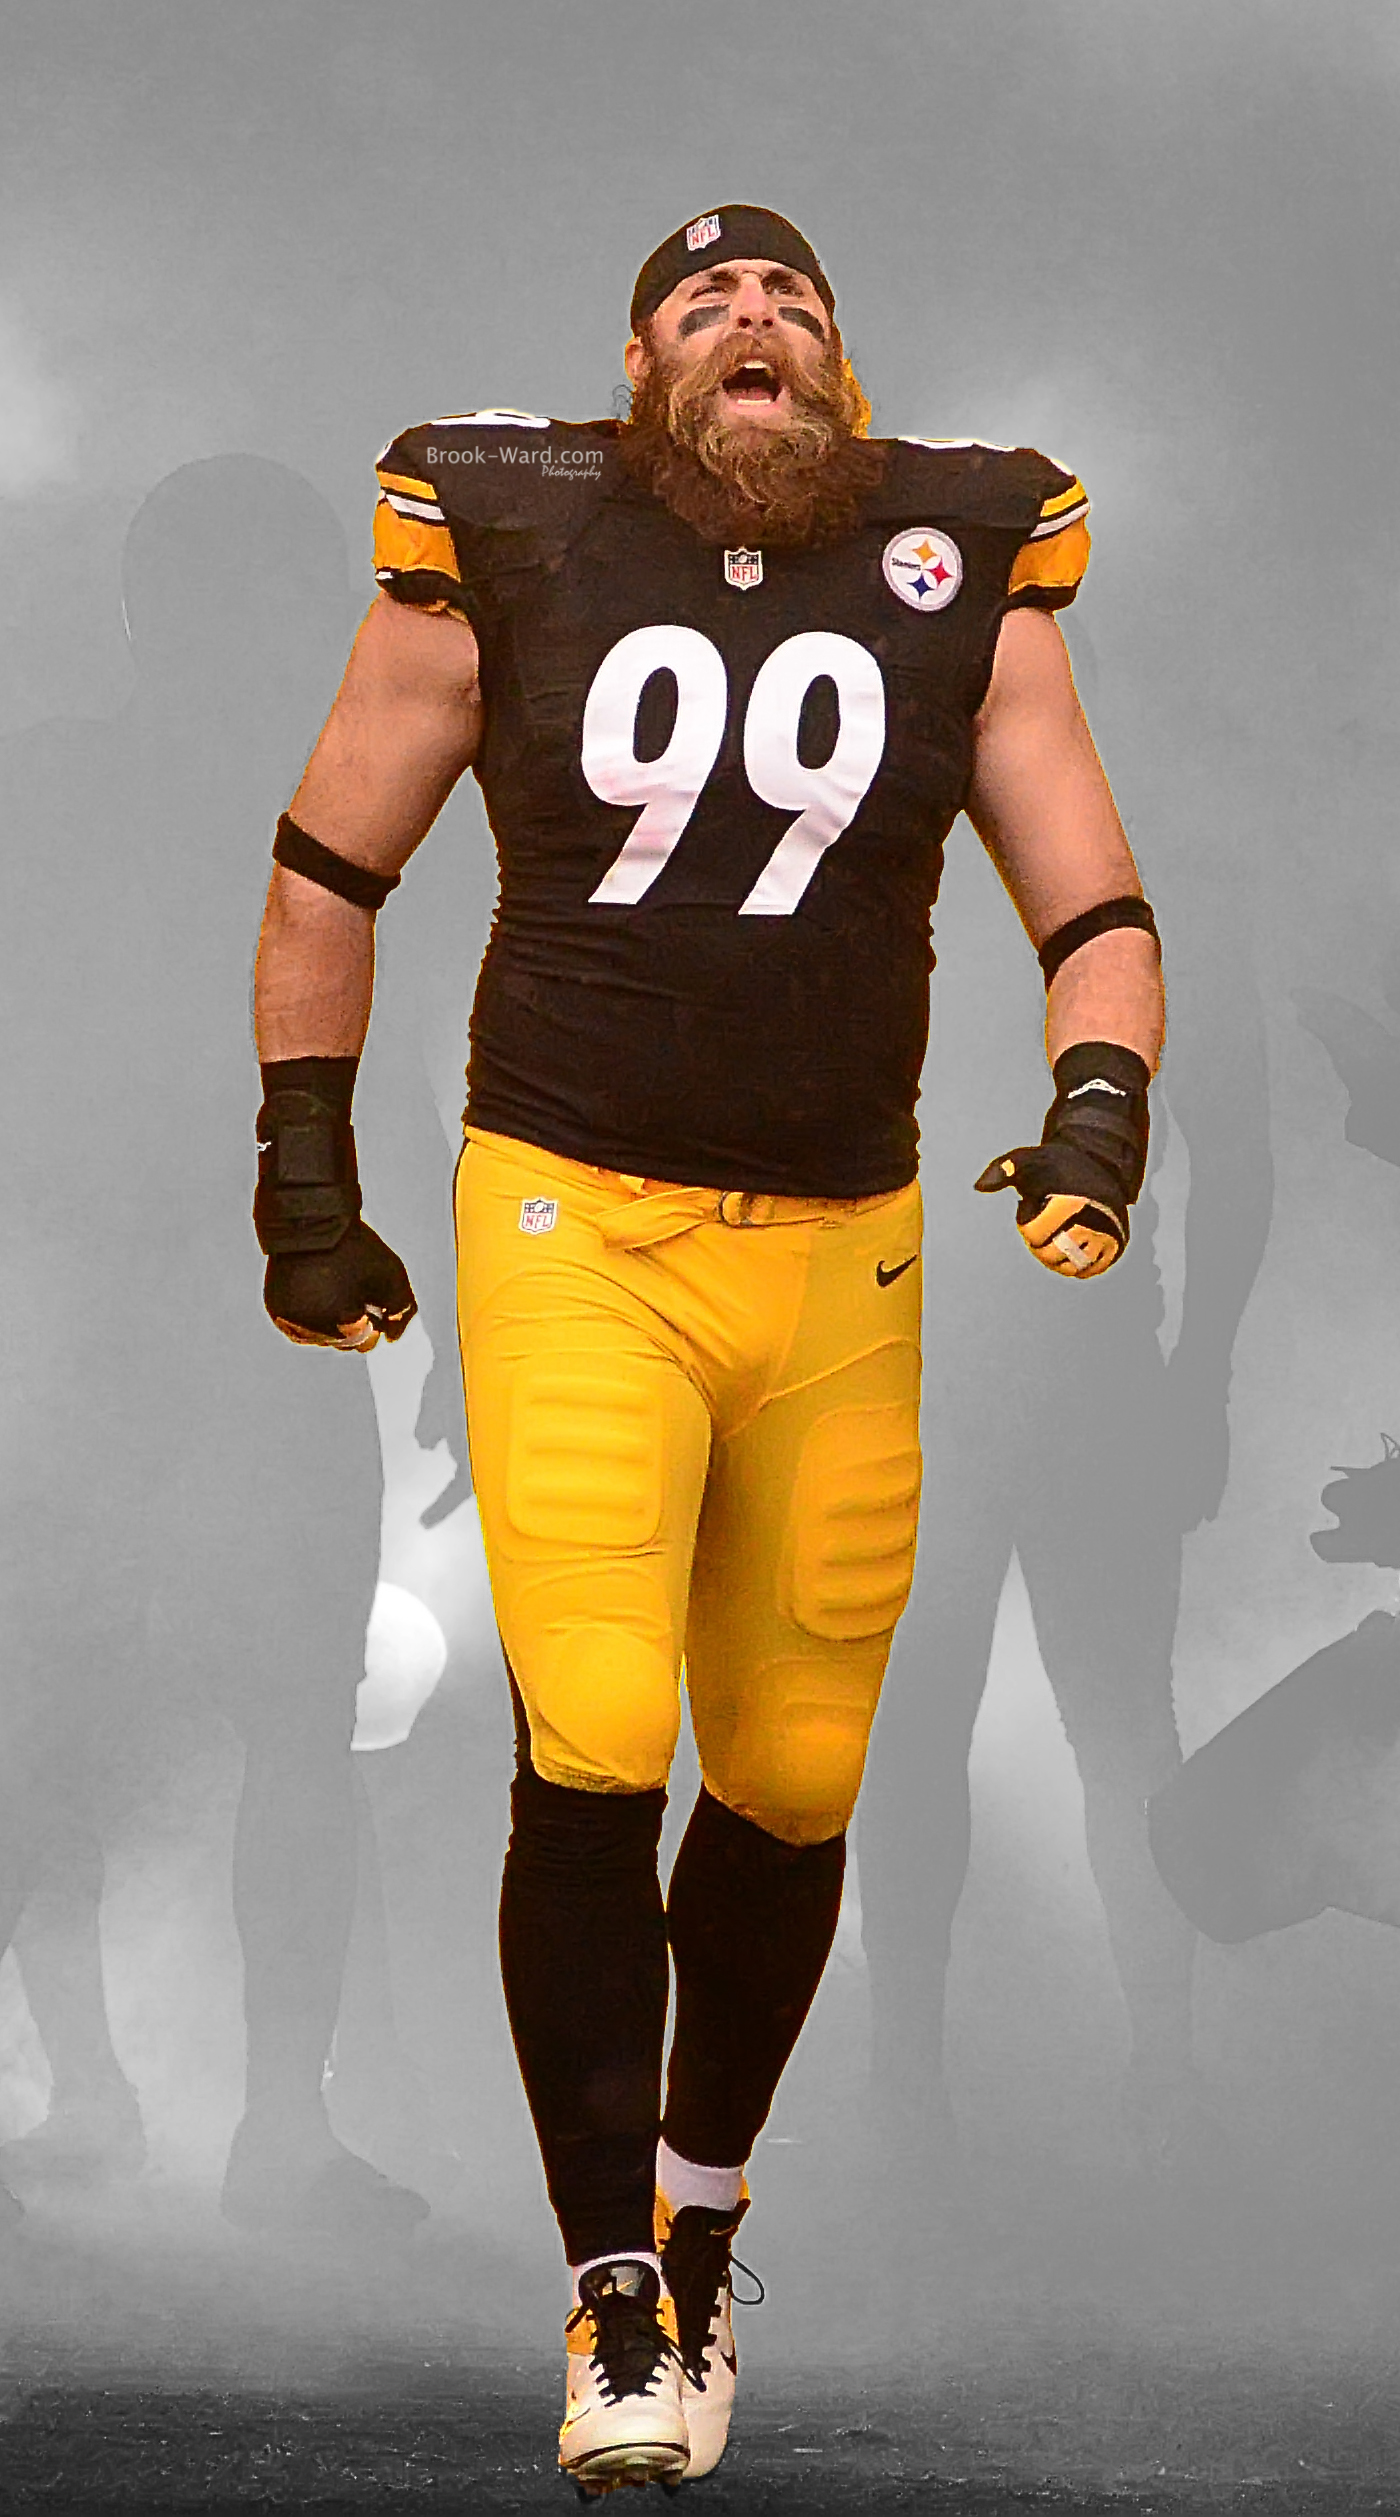 360 Keisel 2013 iPhone Wallpaper.jpg